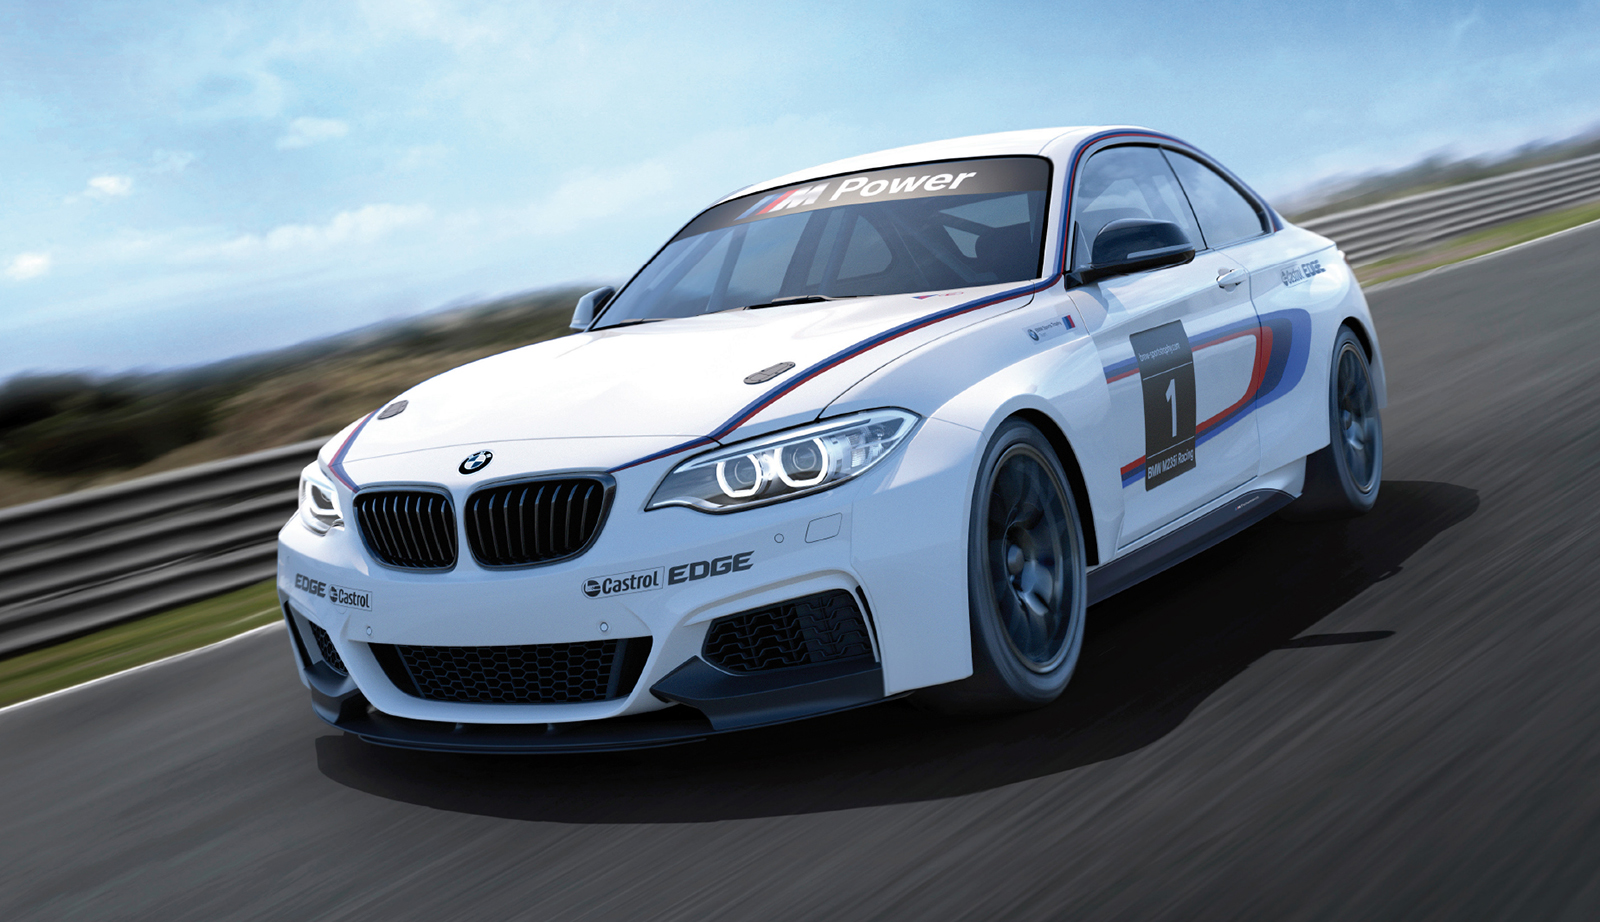 The BMW M Is Coming Heres What We Know BimmerFile - Bmw 2 series weight